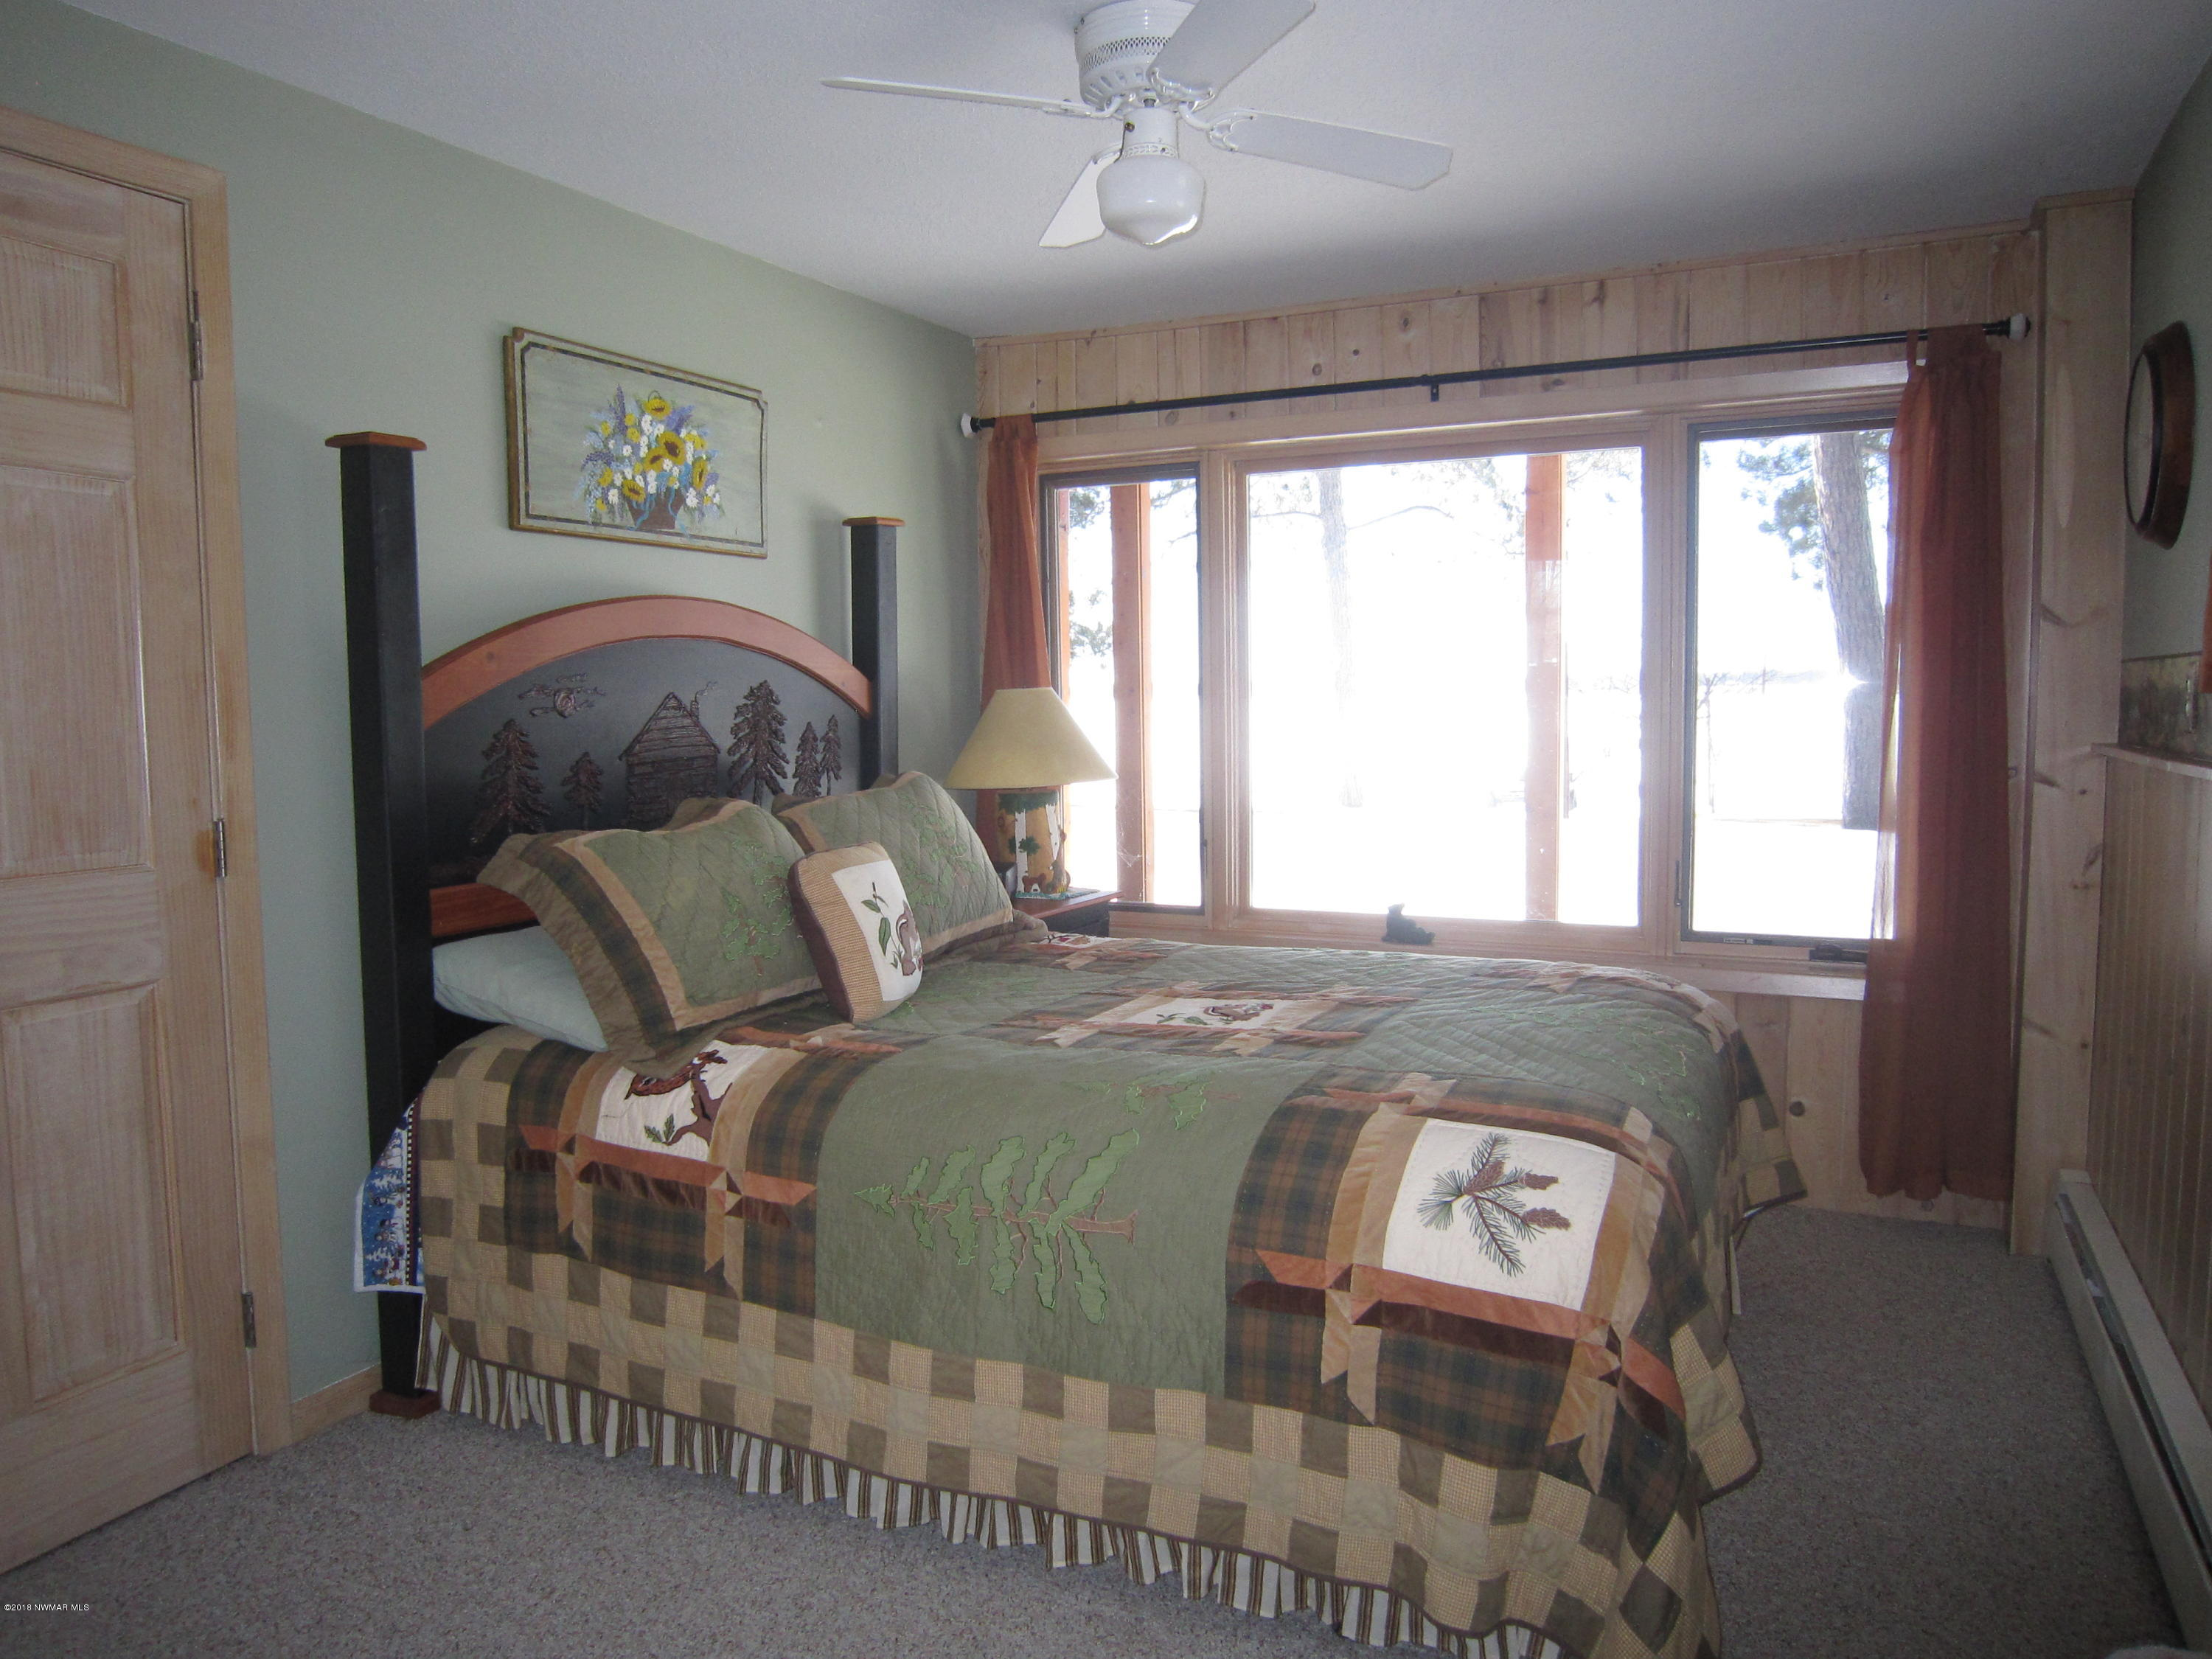 LL bedroom with lakeview